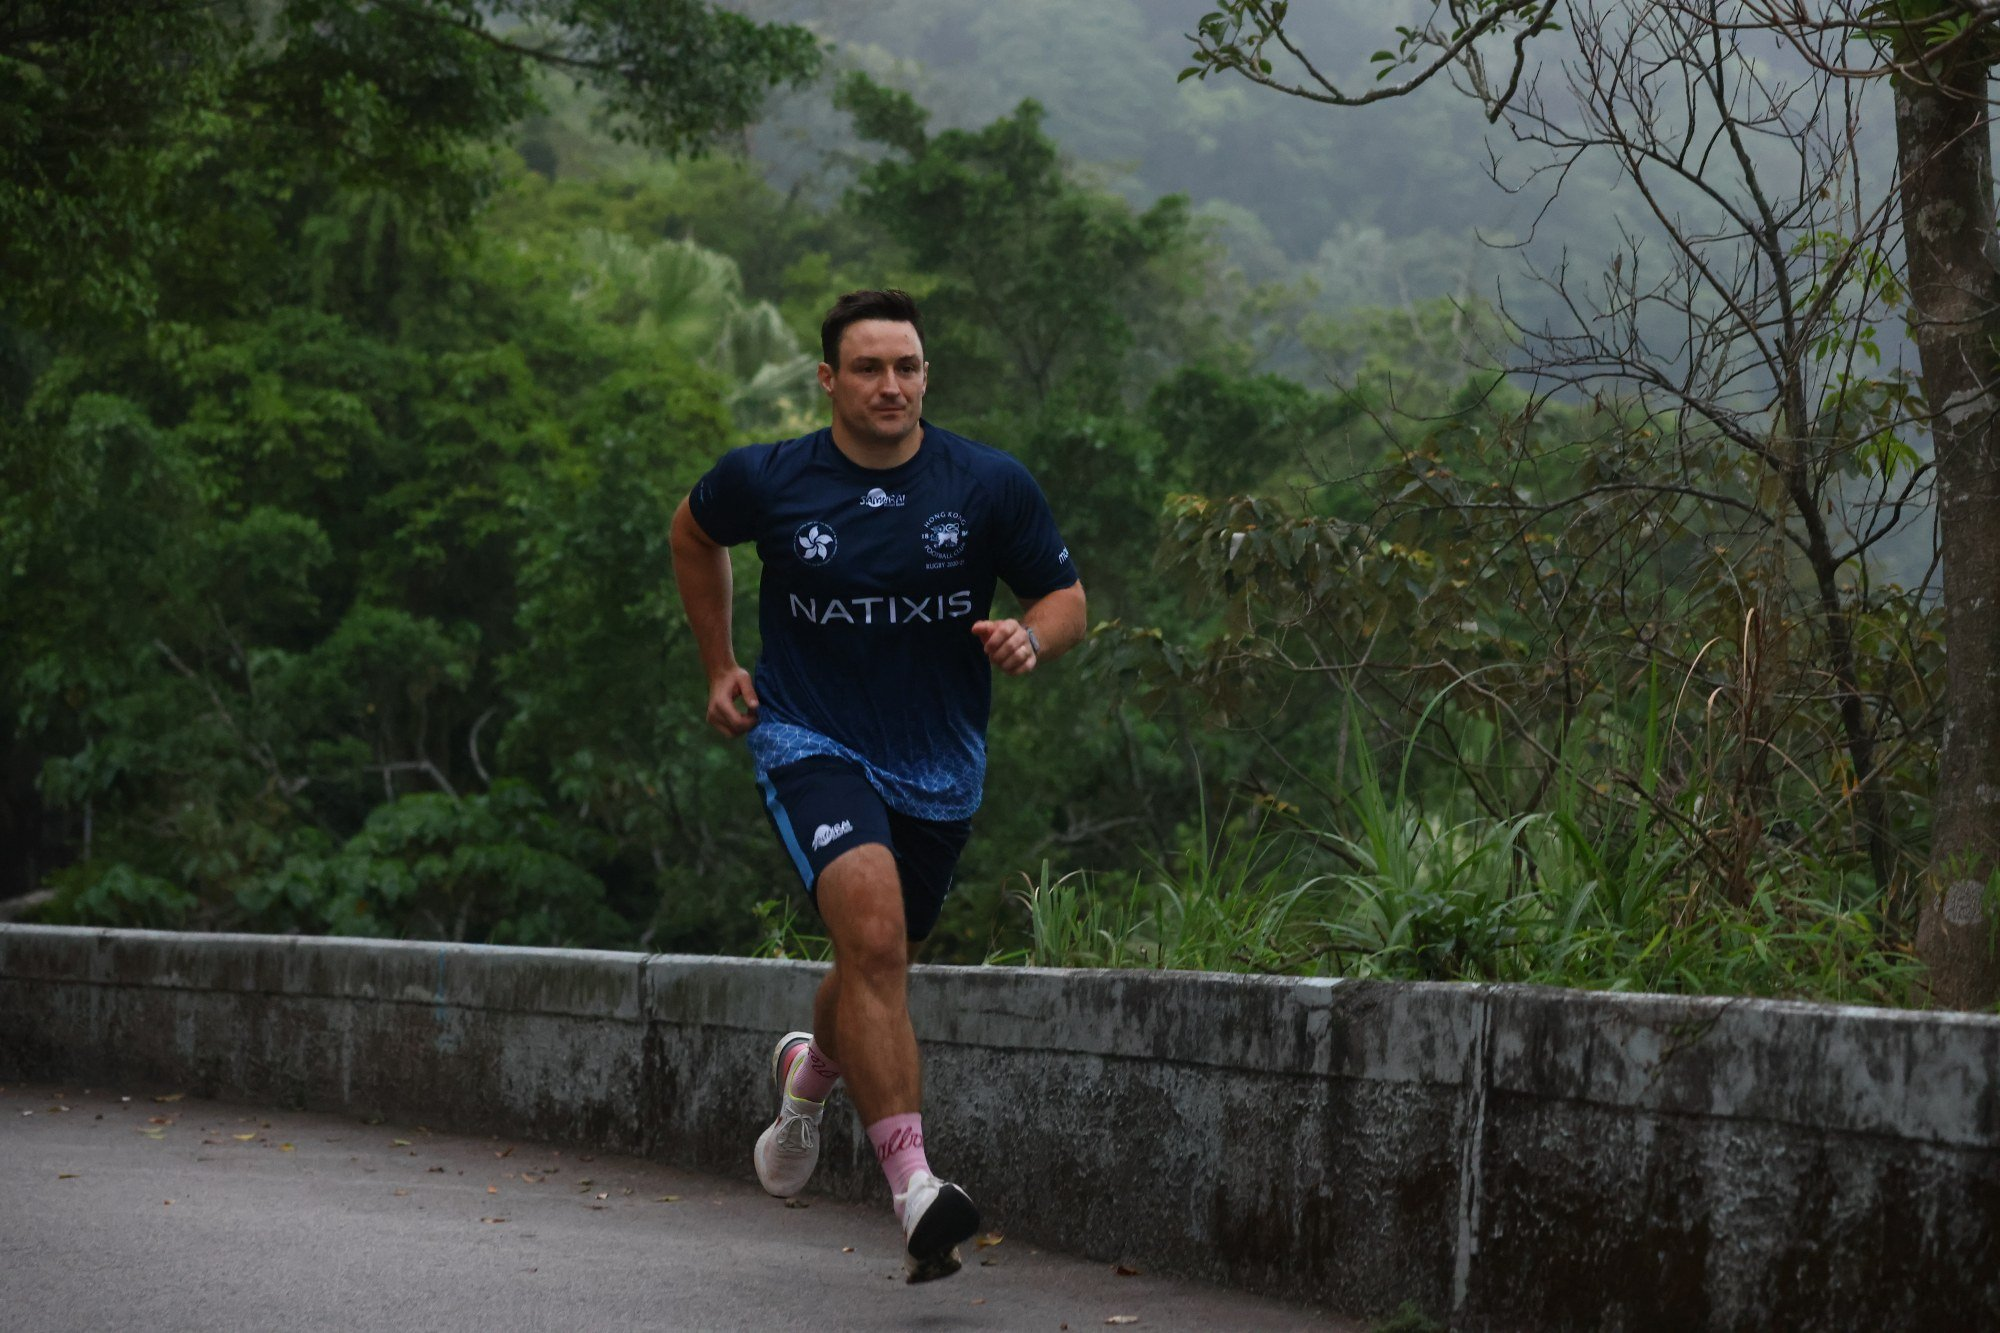 John McCormick-Houston runs up Magazine Gap in Mid-Levels as part of the 'HKFC Rugby to Hanoi' fundraising month. Photo: Dickson Lee